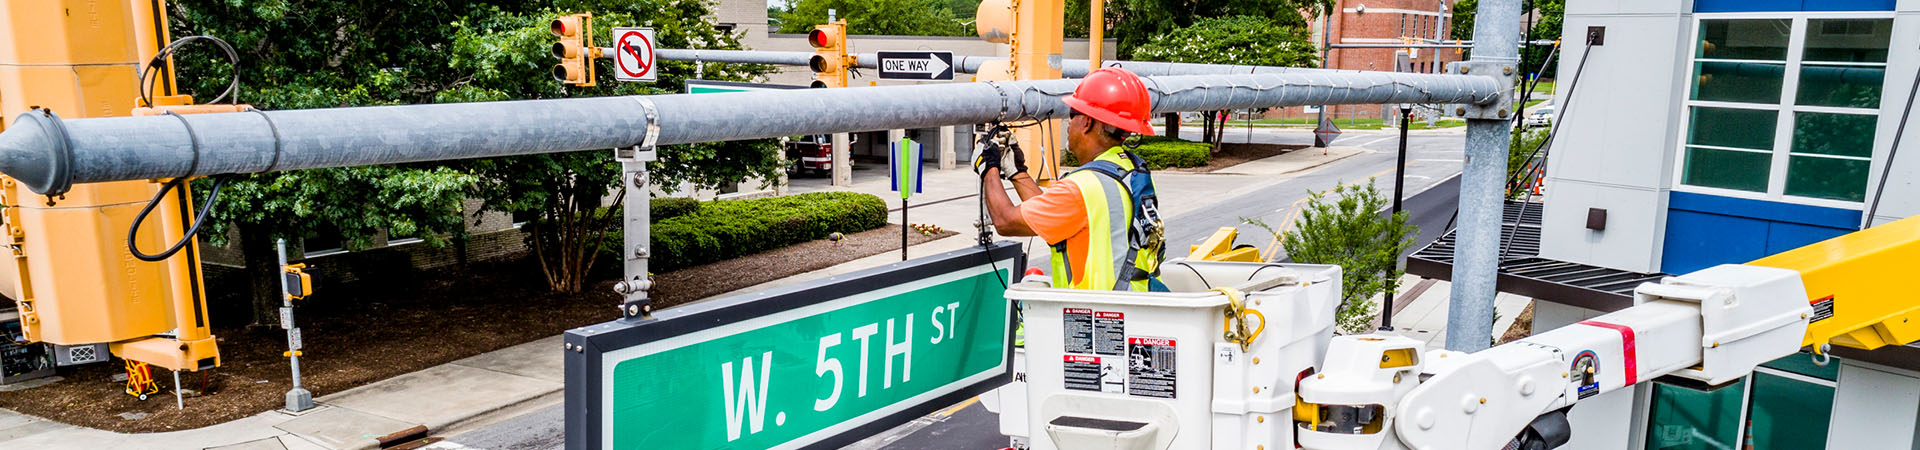 worker repairing a traffic light